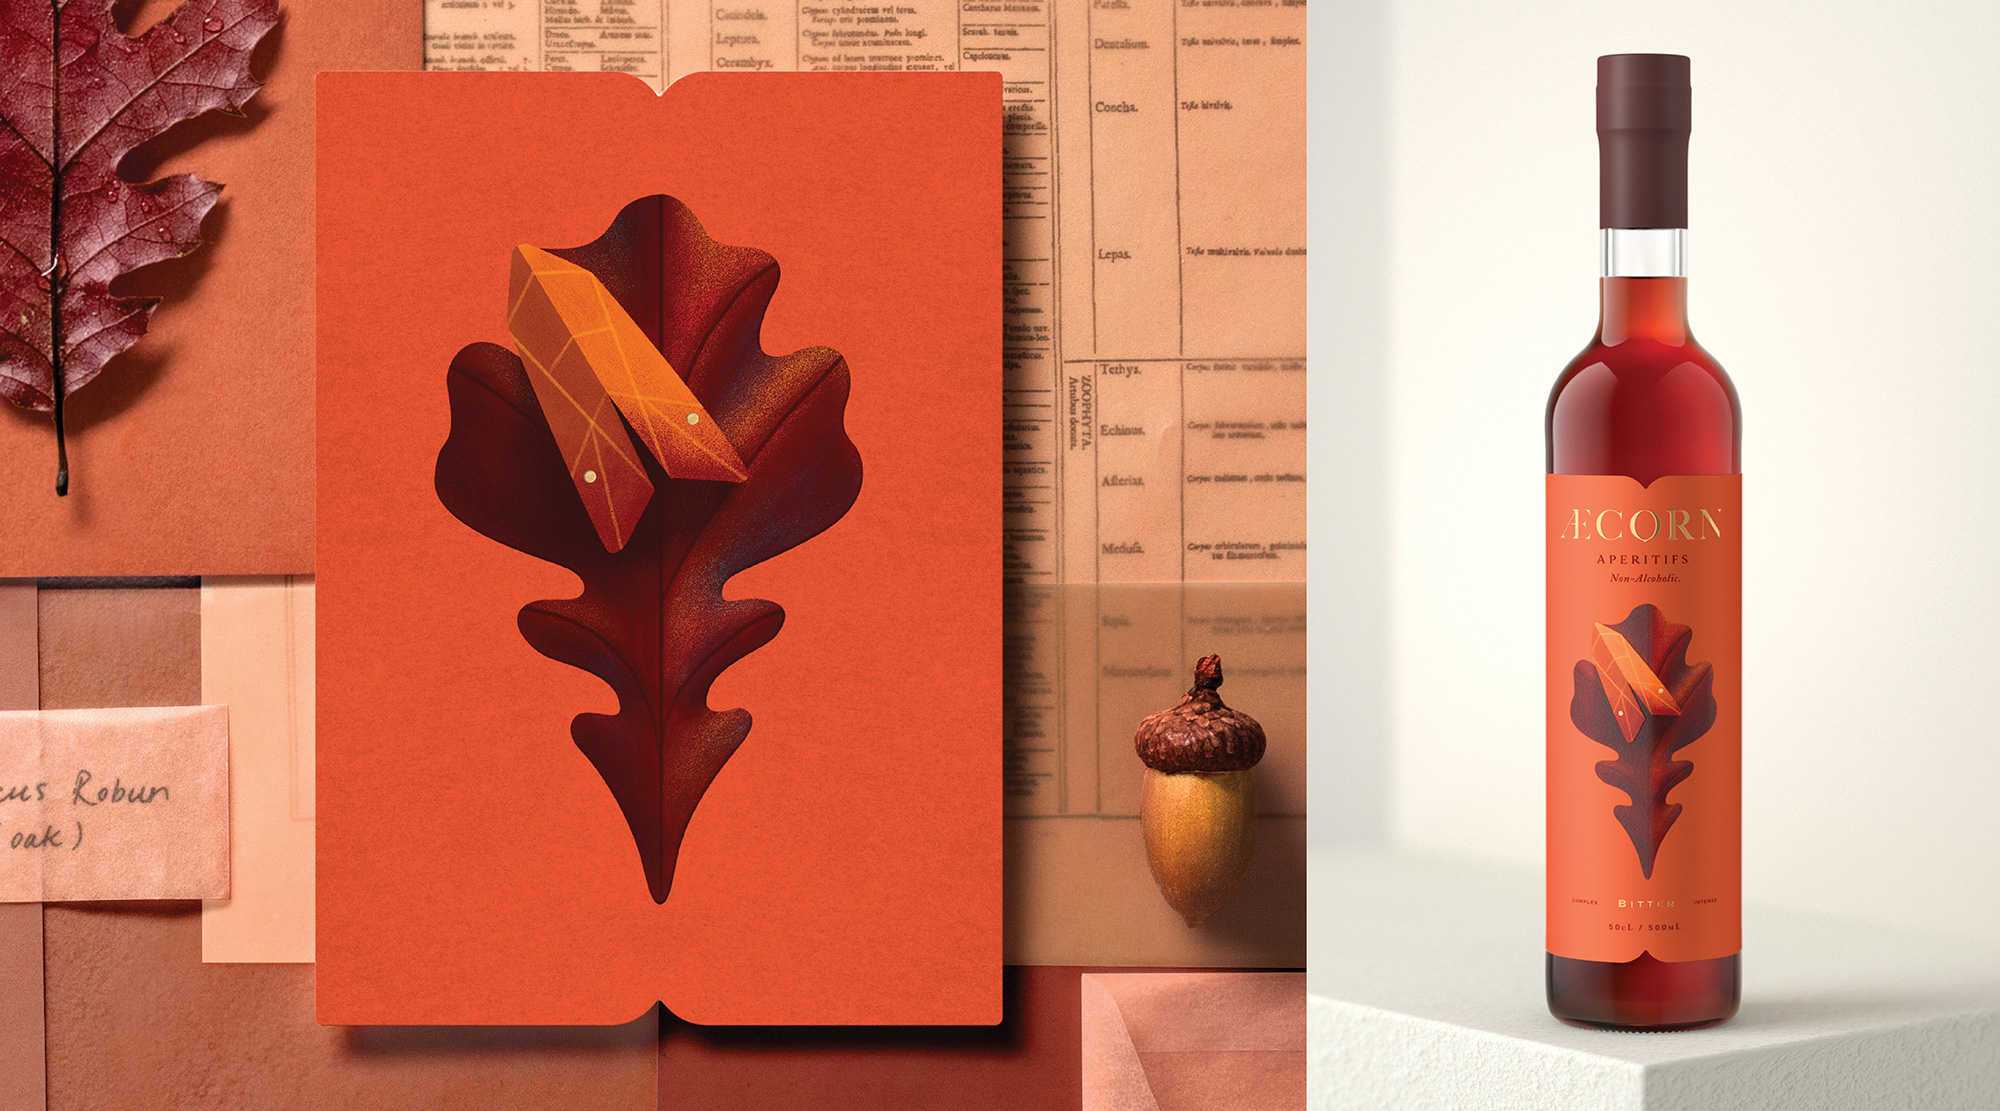 New Logo and Packaging for Æcorn Aperitifs by Pearlfisher